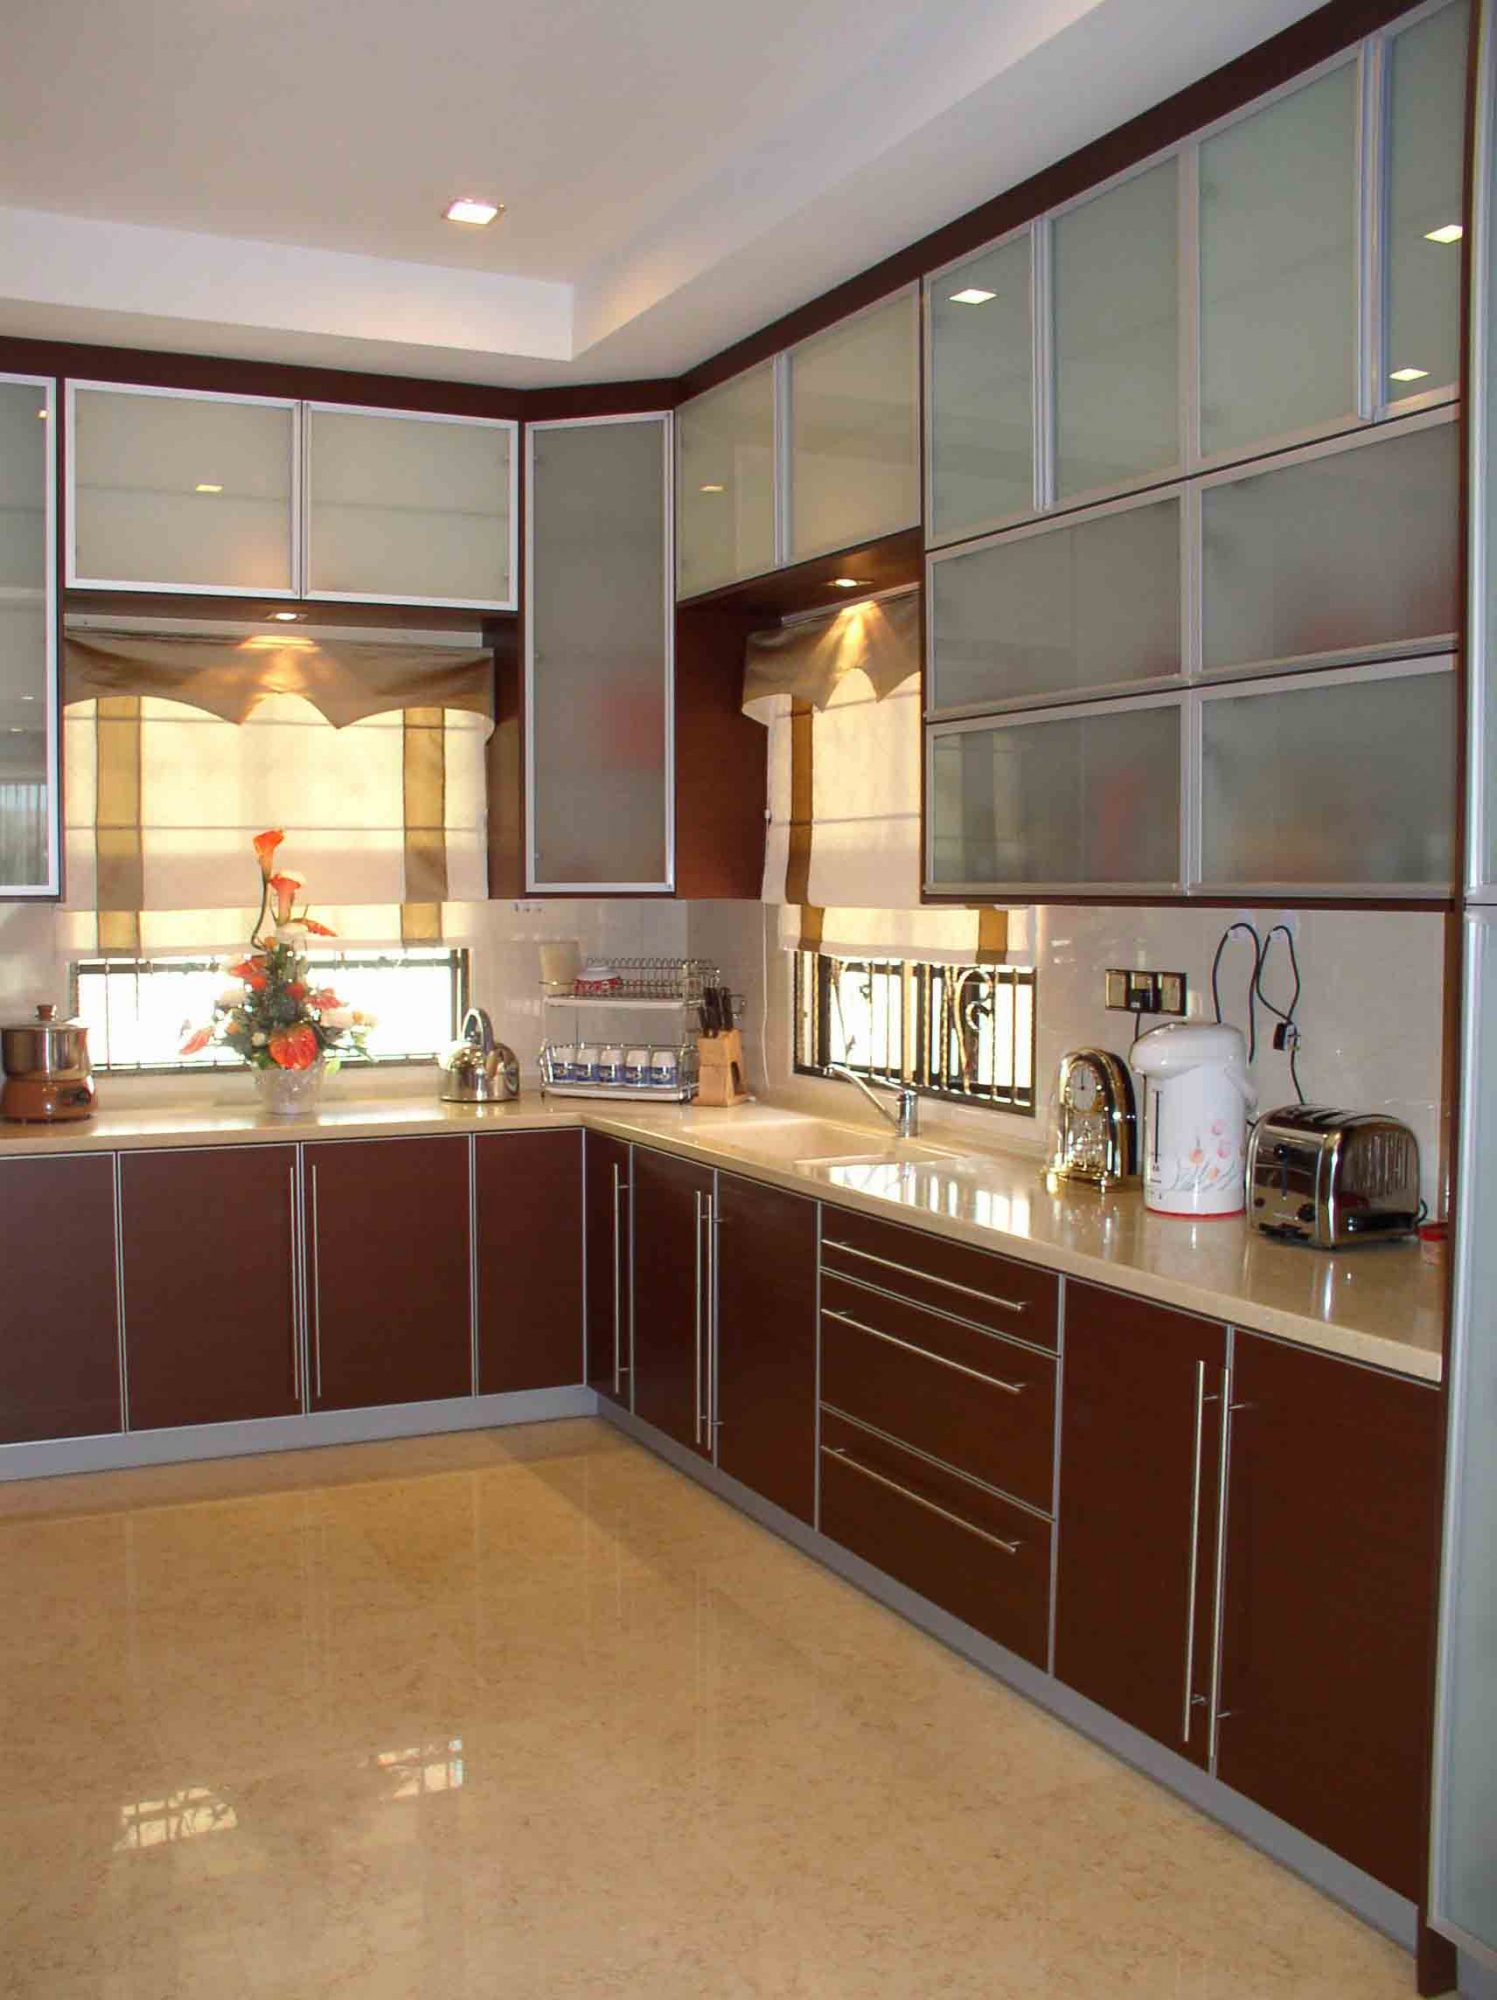 kitchen cabinet designer large floor tiles for 20 popular designs in malaysia recommend